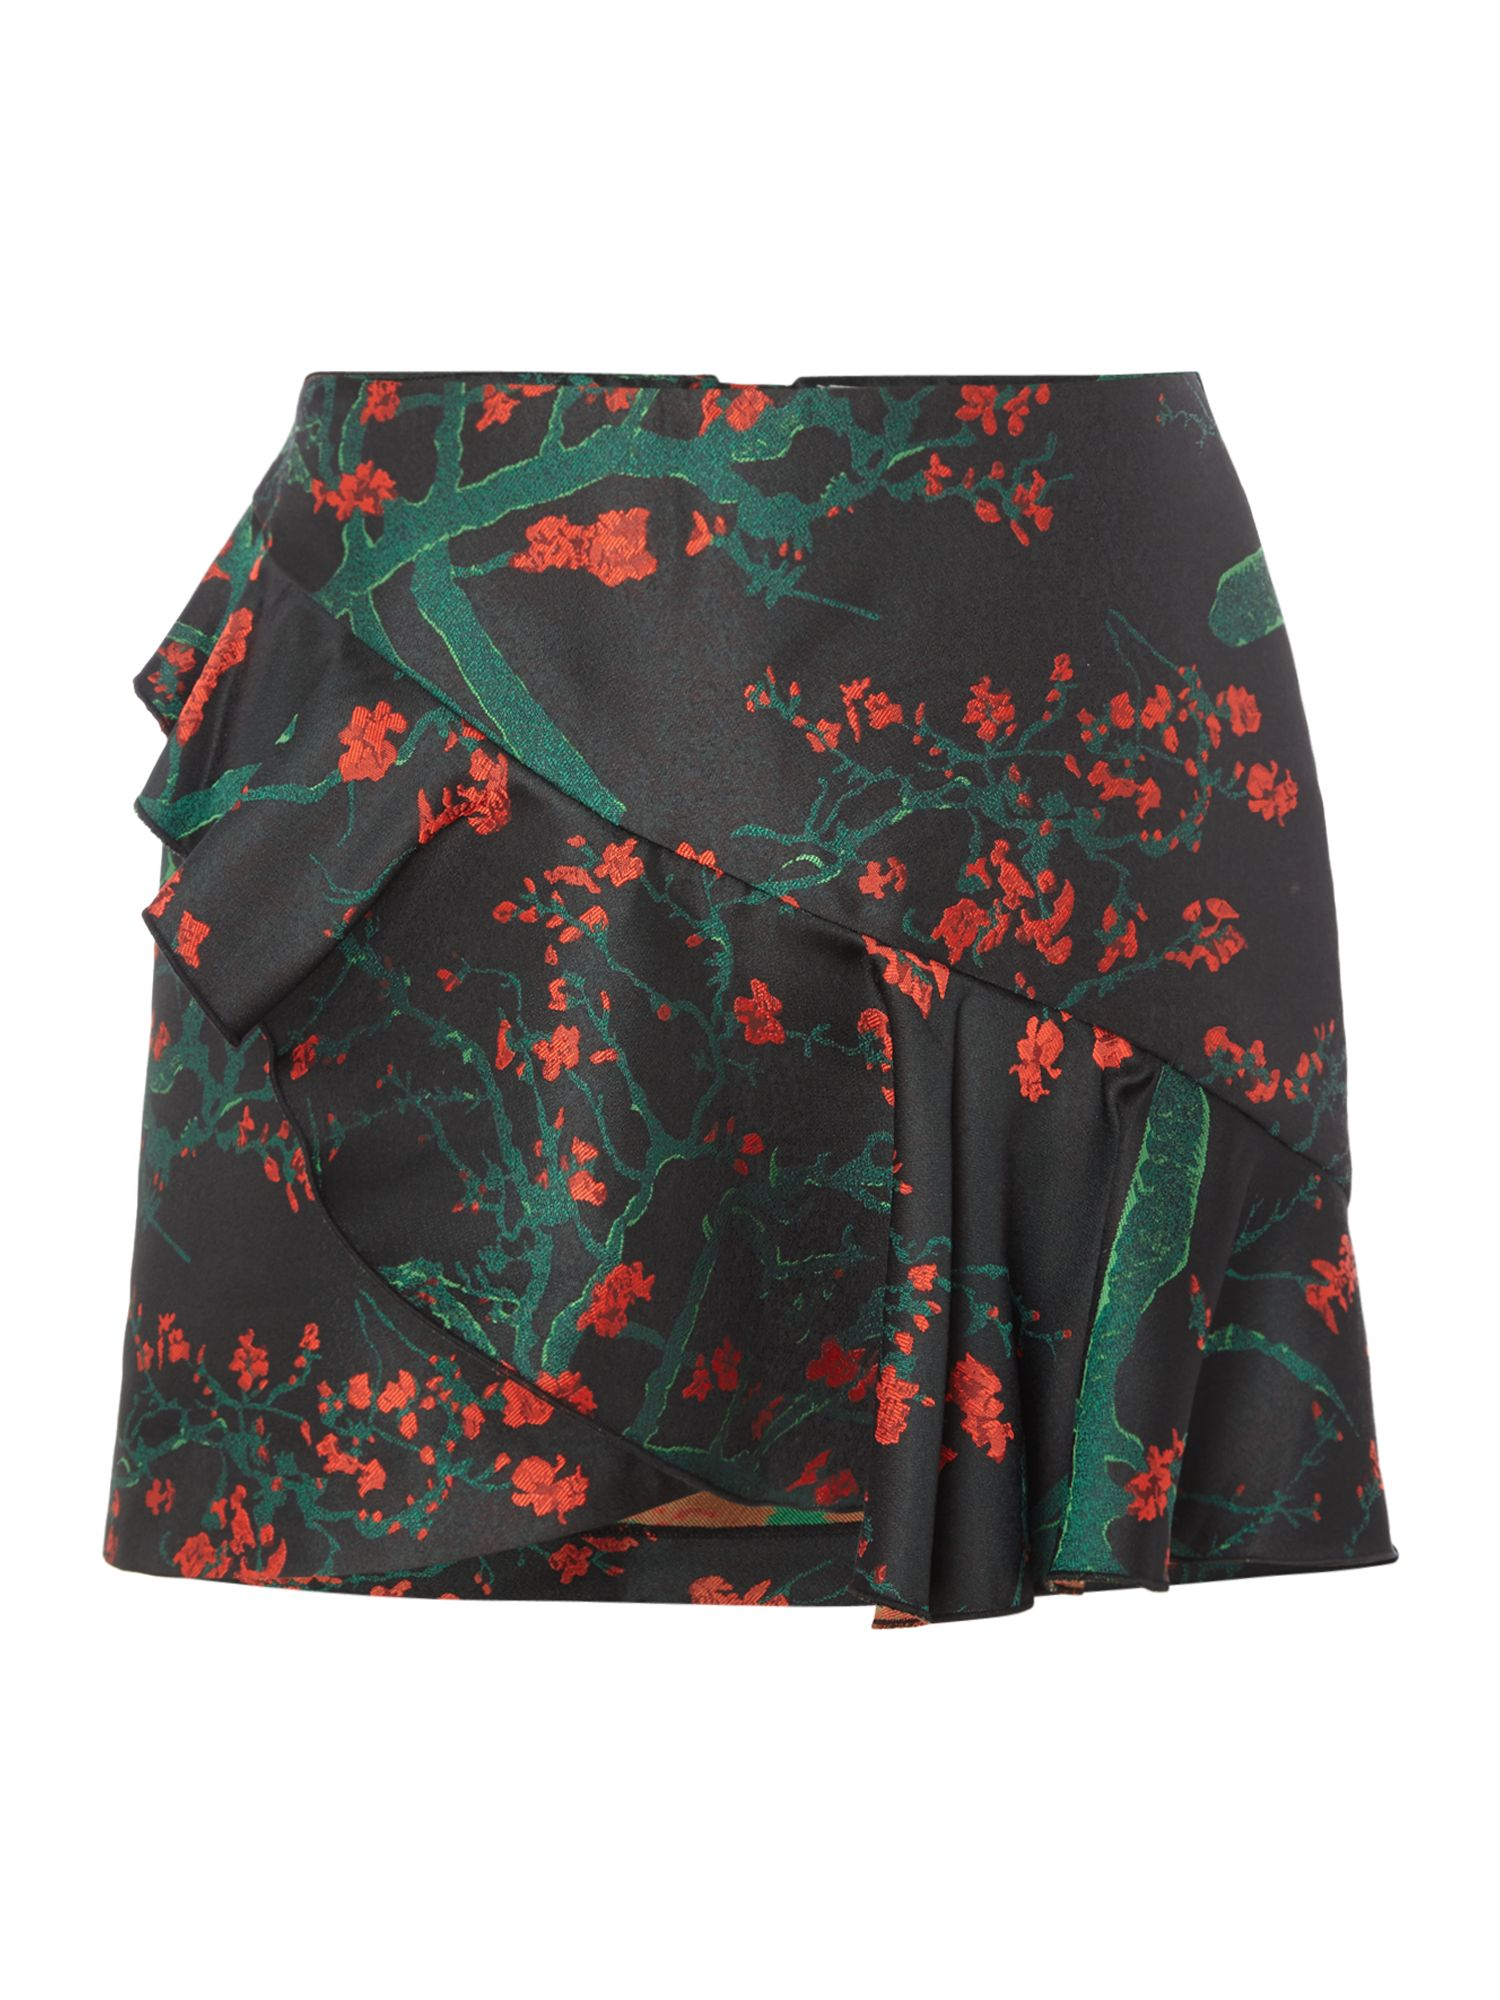 Vero Moda Ruffle floral mini skirt, Black